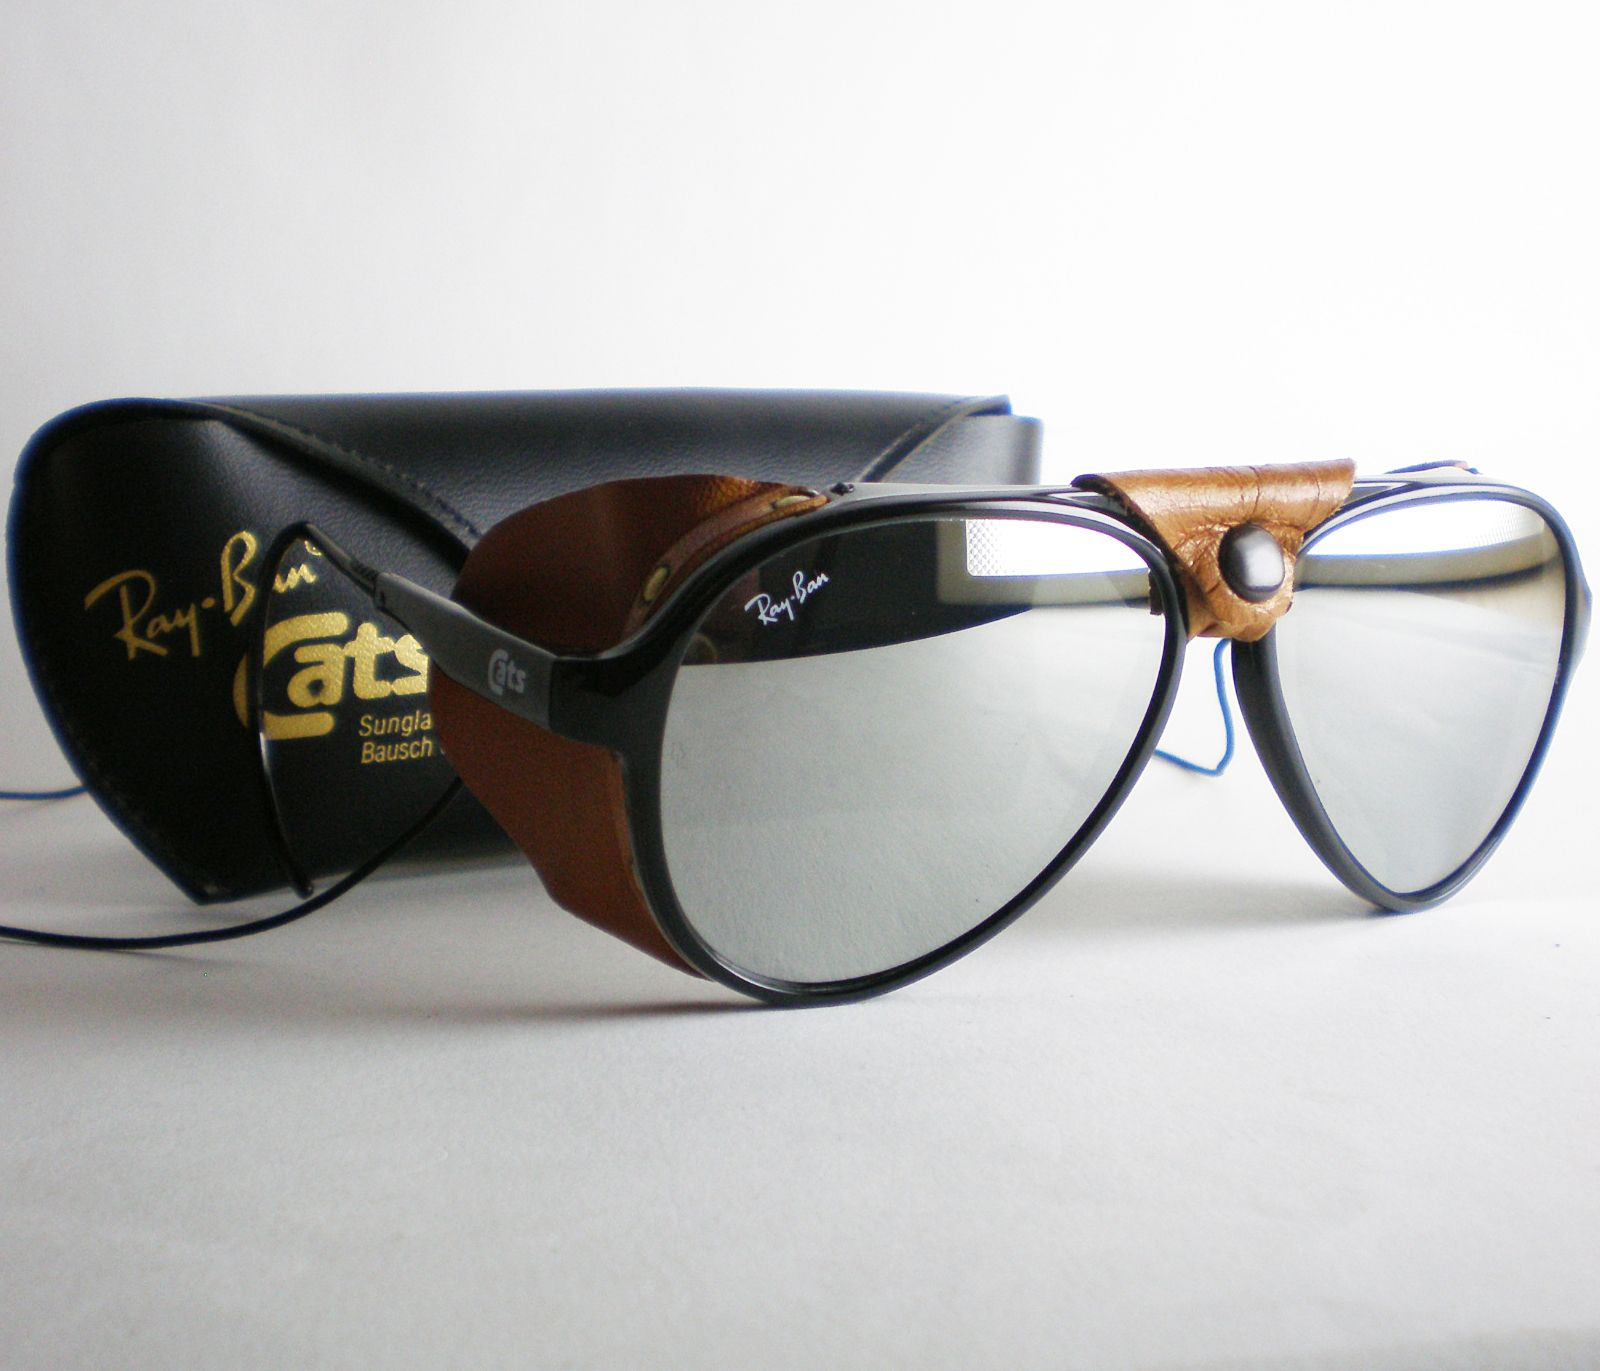 c691cb62769 Vintage Ray Ban CATS 8000 MIRRORED Sunglasses aviator side shield leathers  black